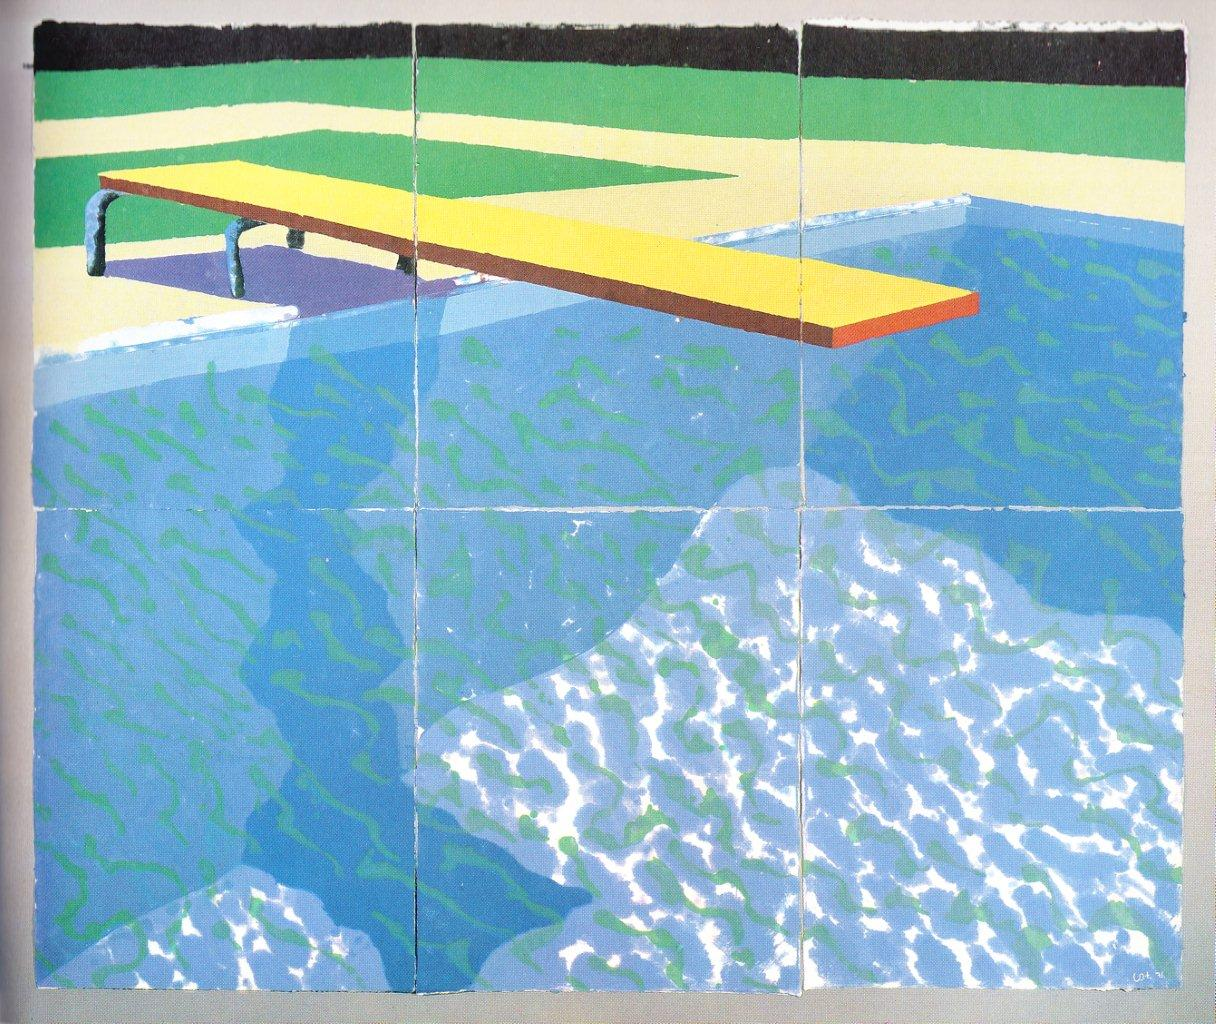 the gallery for gt david hockney painting his pool